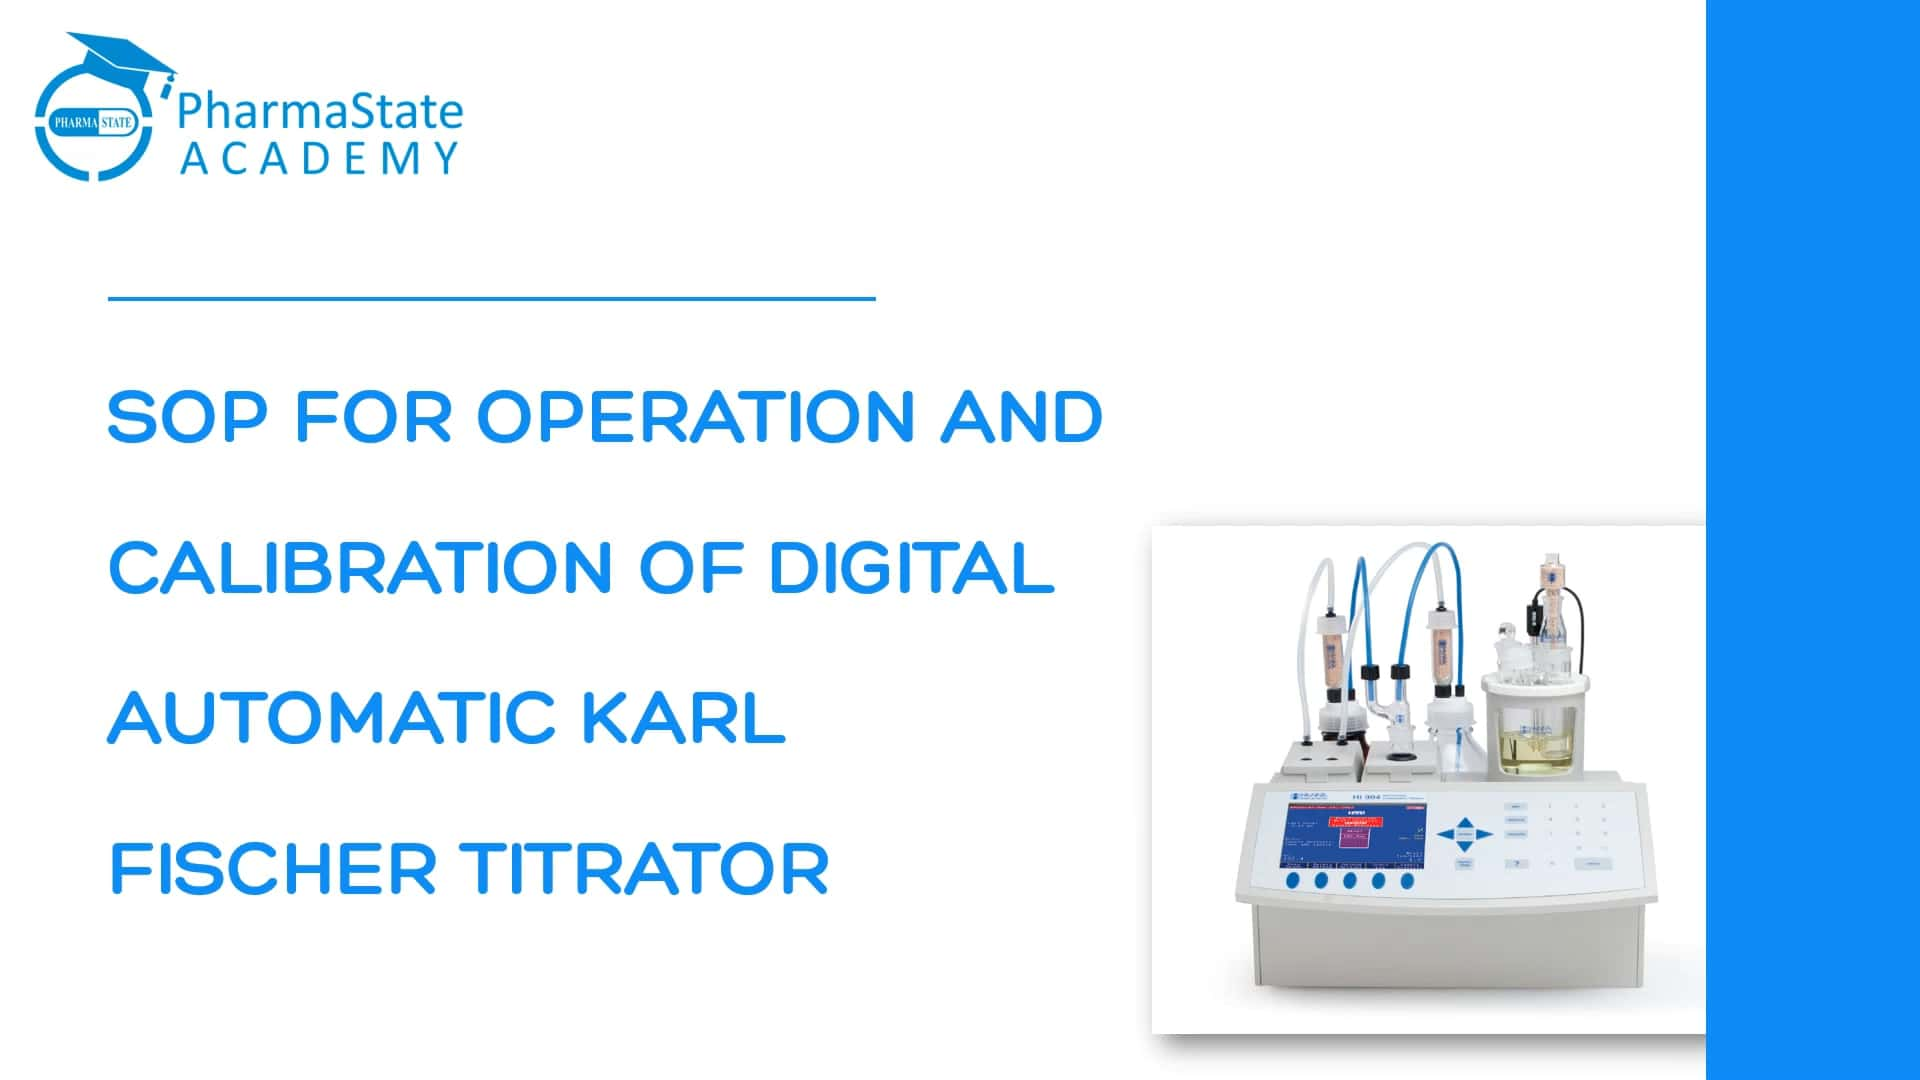 SOP FOR OPERATION AND CALIBRATION OF DIGITAL AUTOMATIC KARL FISCHER TITRATOR